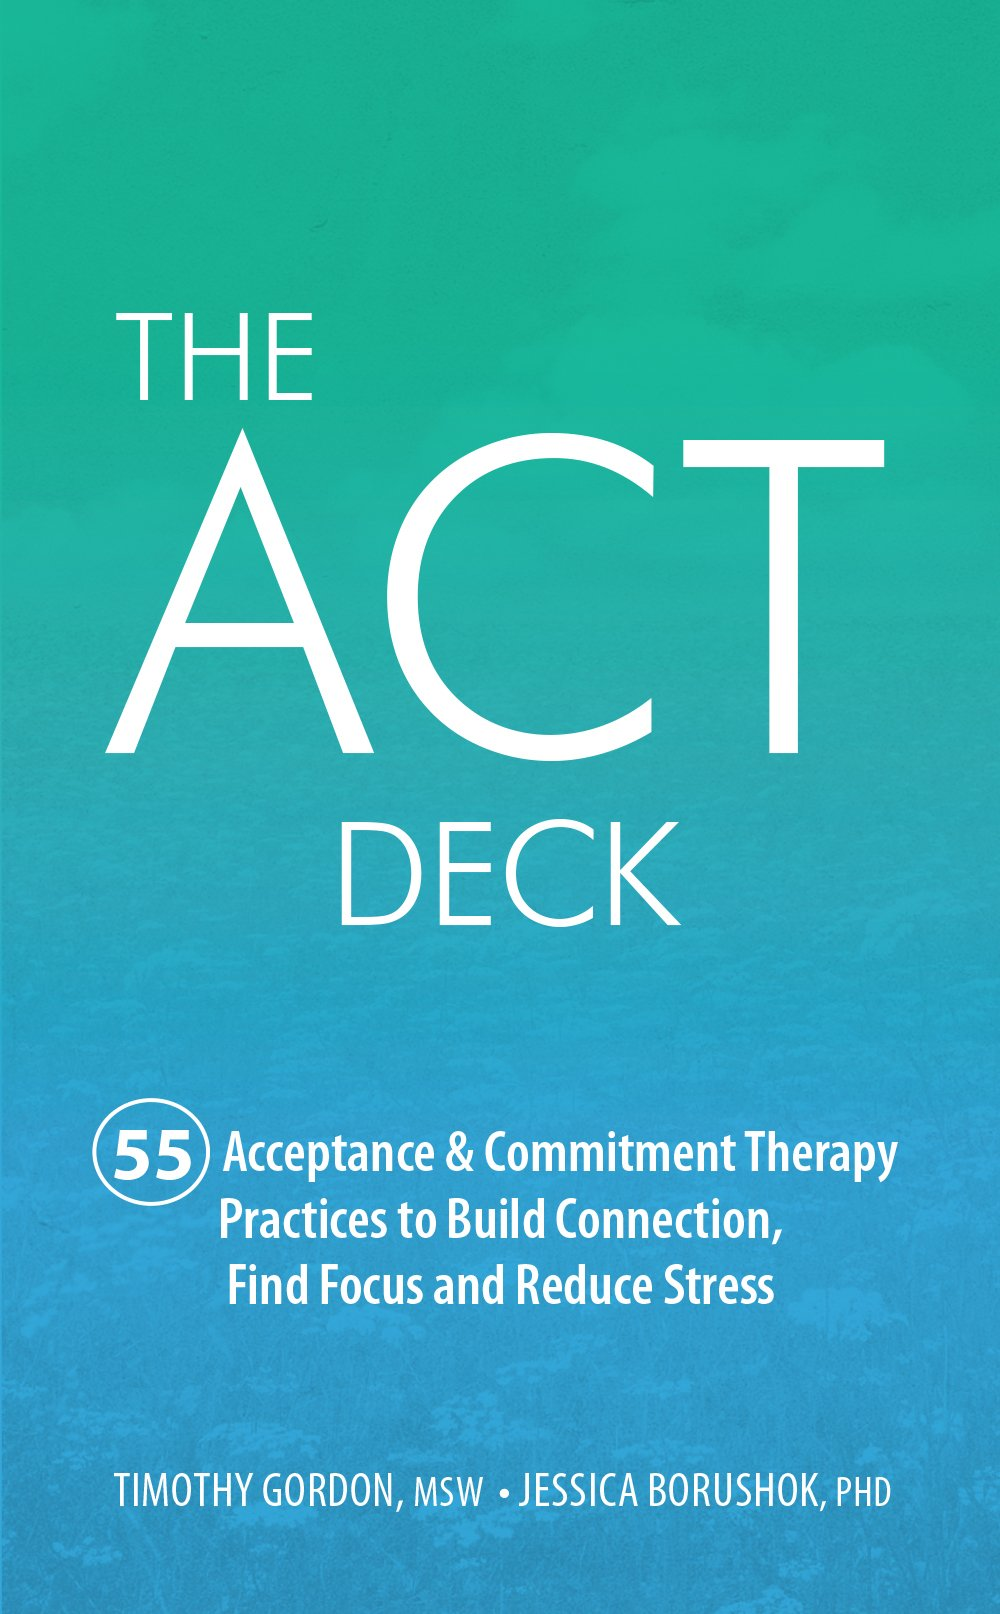 The ACT Deck:55 Acceptance & Commitment Therapy Practices to Build Connection, Find Focus and Reduce Stress ePub fb2 book